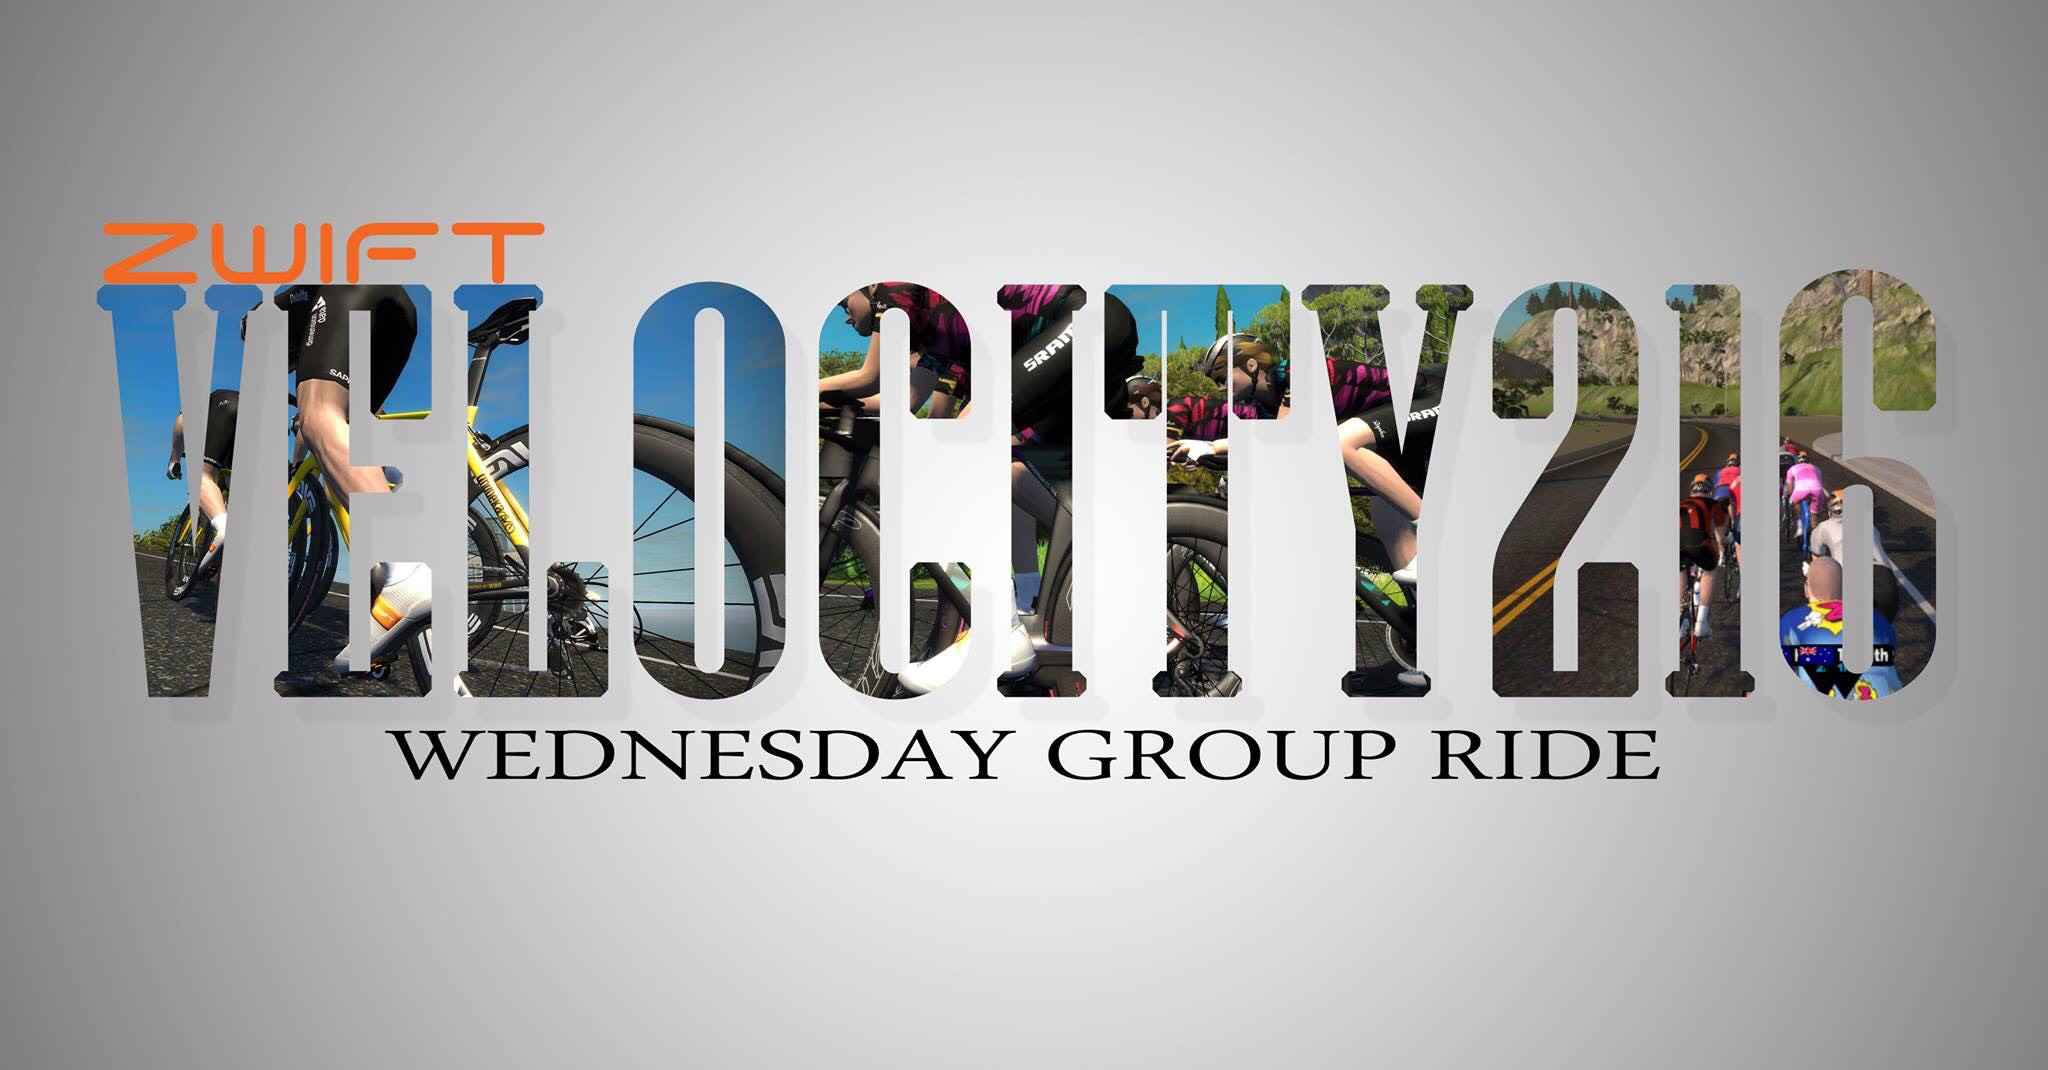 Zwift Velocity216 Wednesday Group Ride